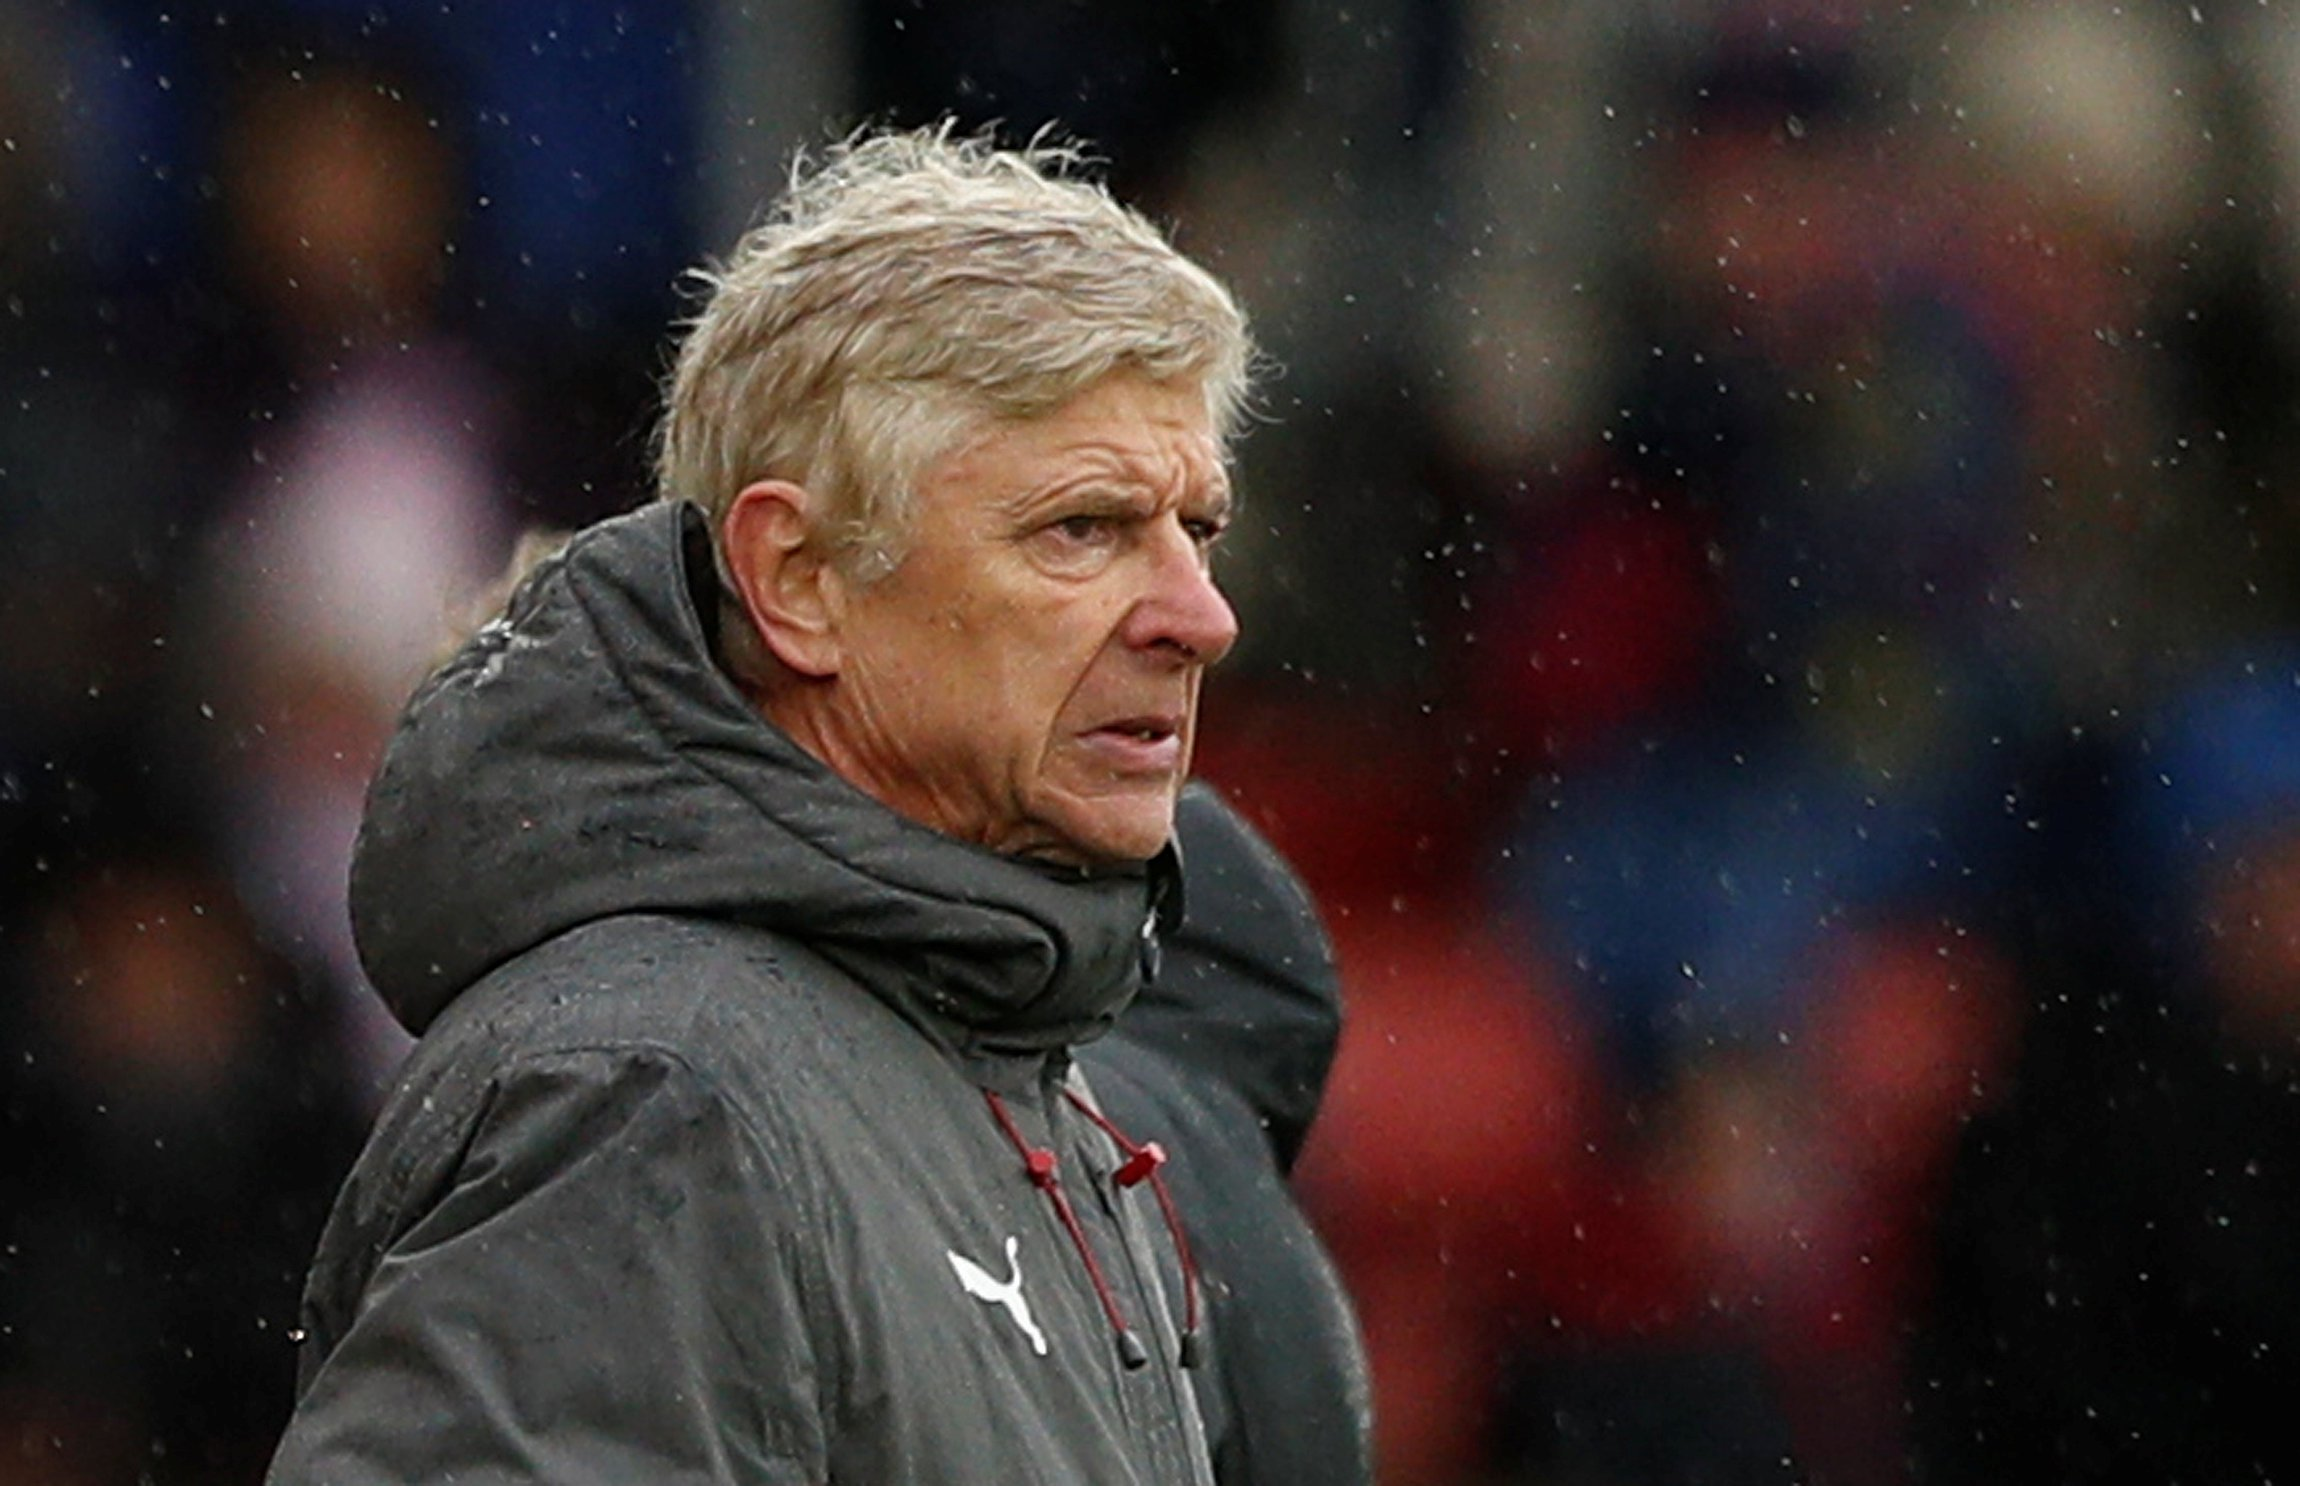 'How can Arsene Wenger not see that?' Arsenal boss slammed after Southampton draw